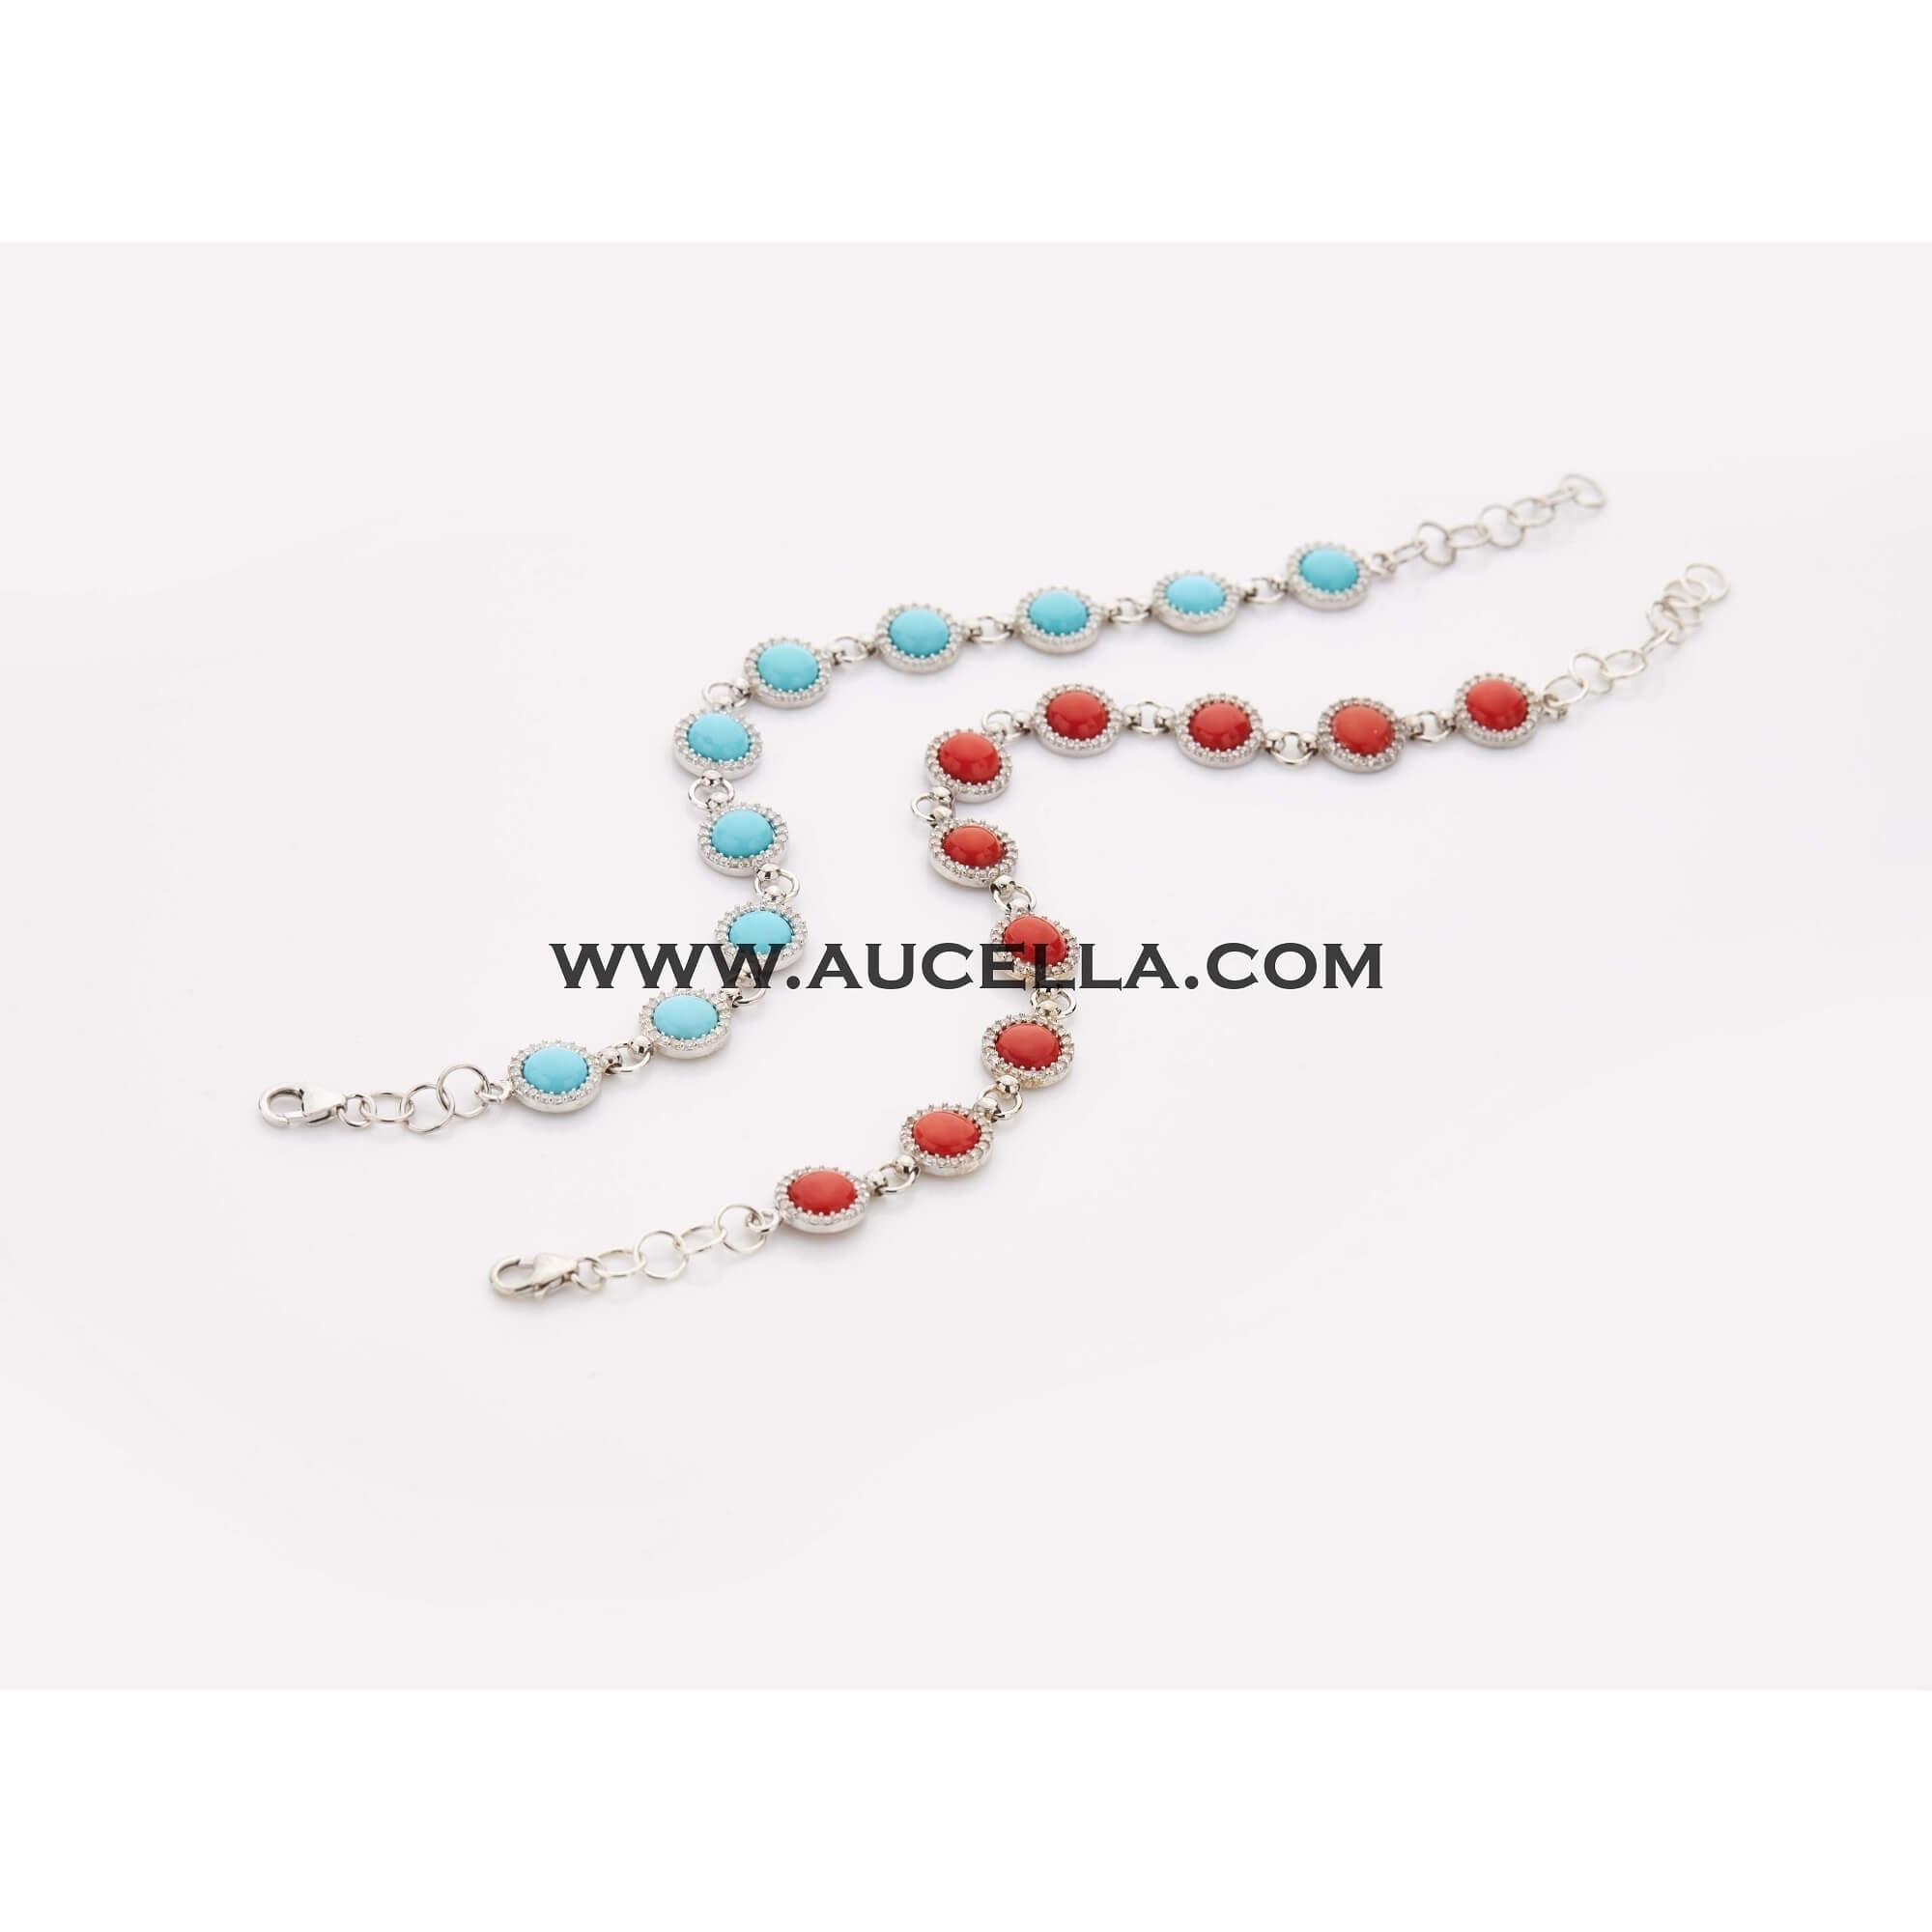 Silver bracelets with mm 6 red coral cabochones